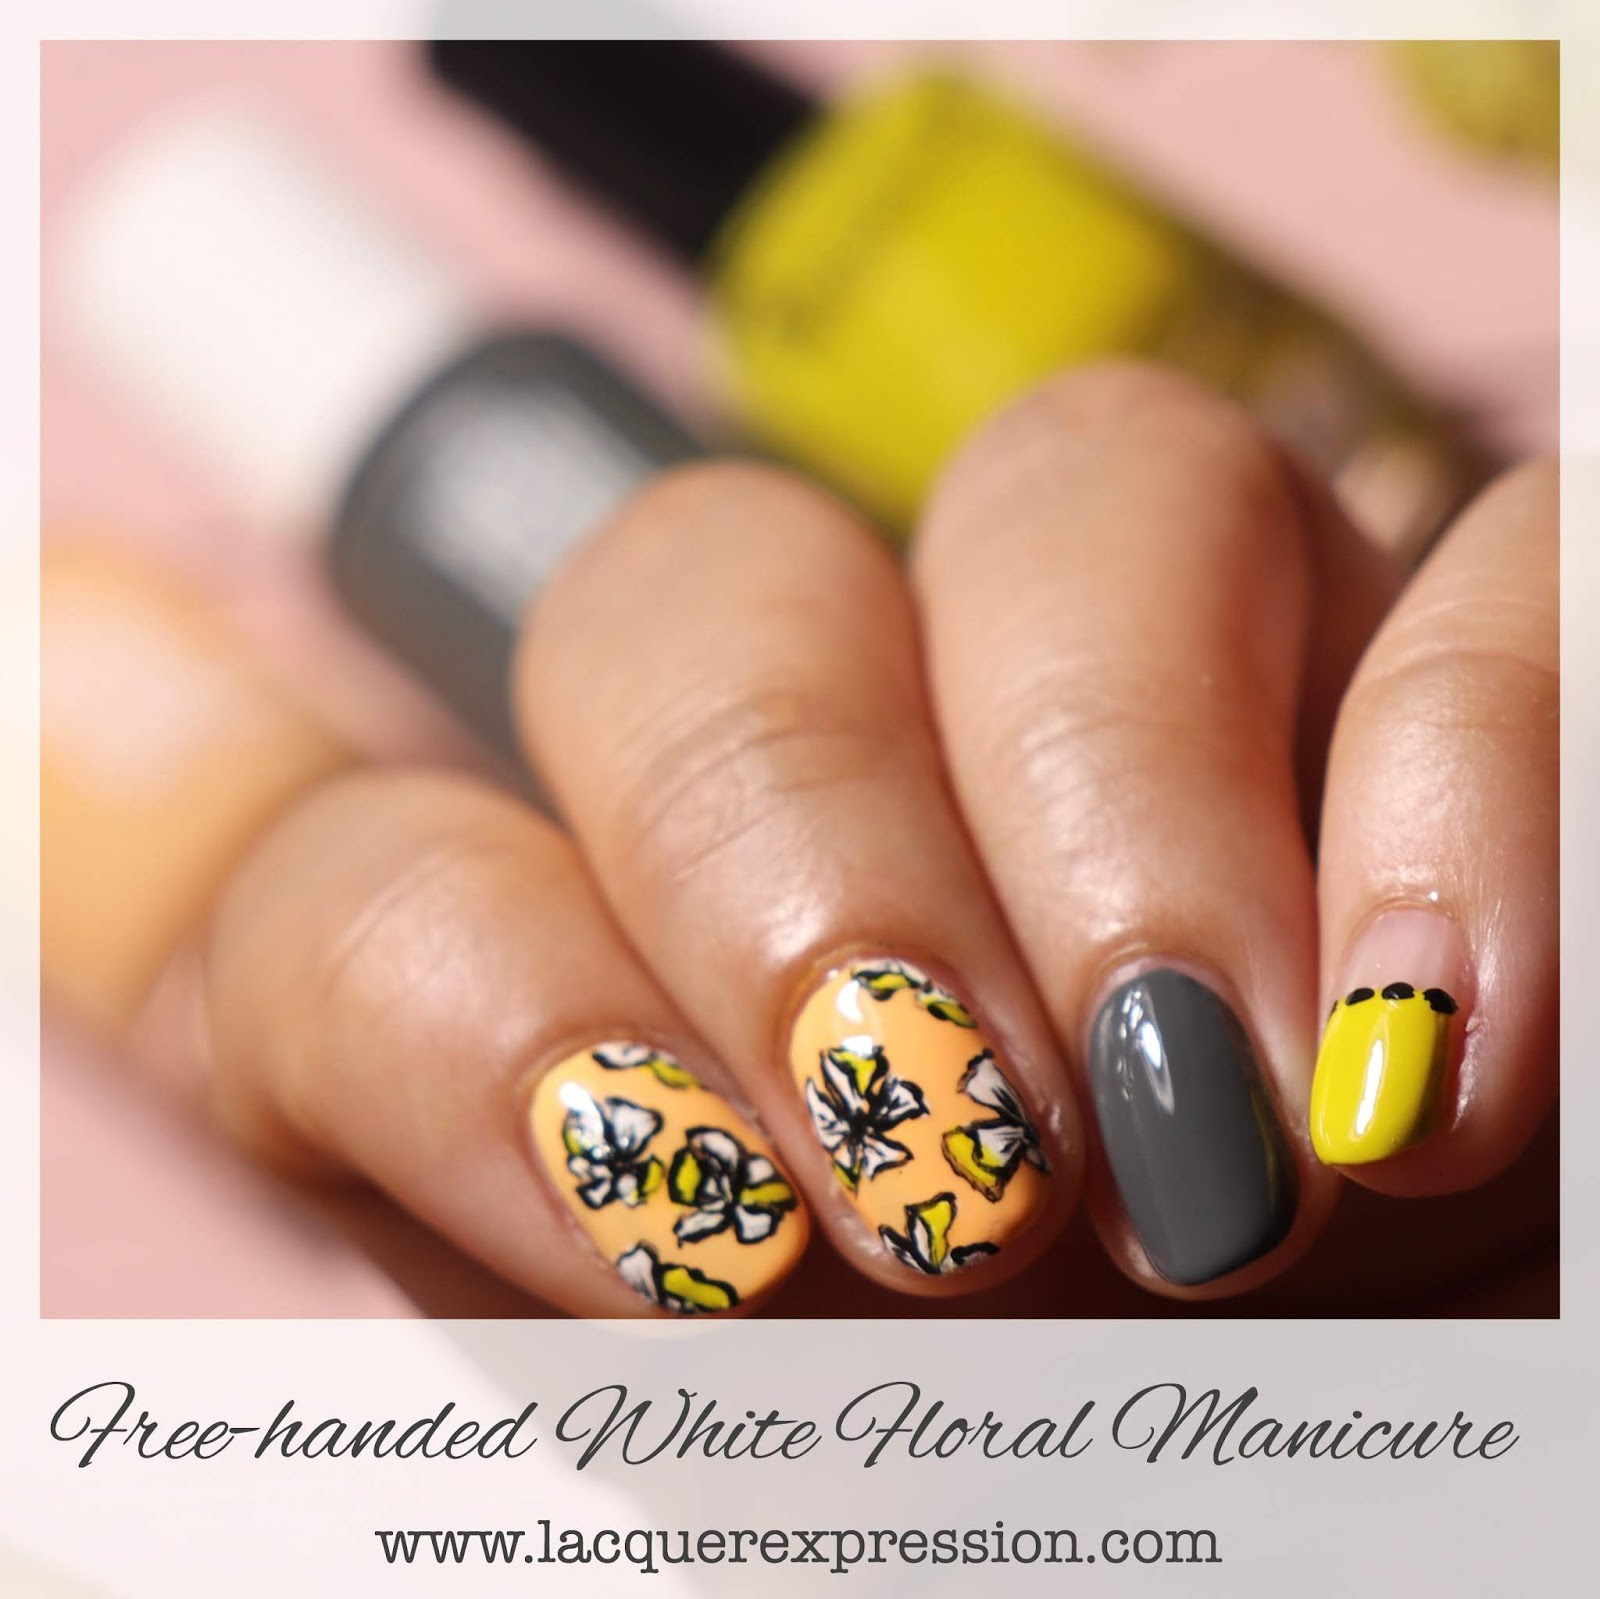 Step By Step Nail Art Thursday Free Handed White Floral Manicure